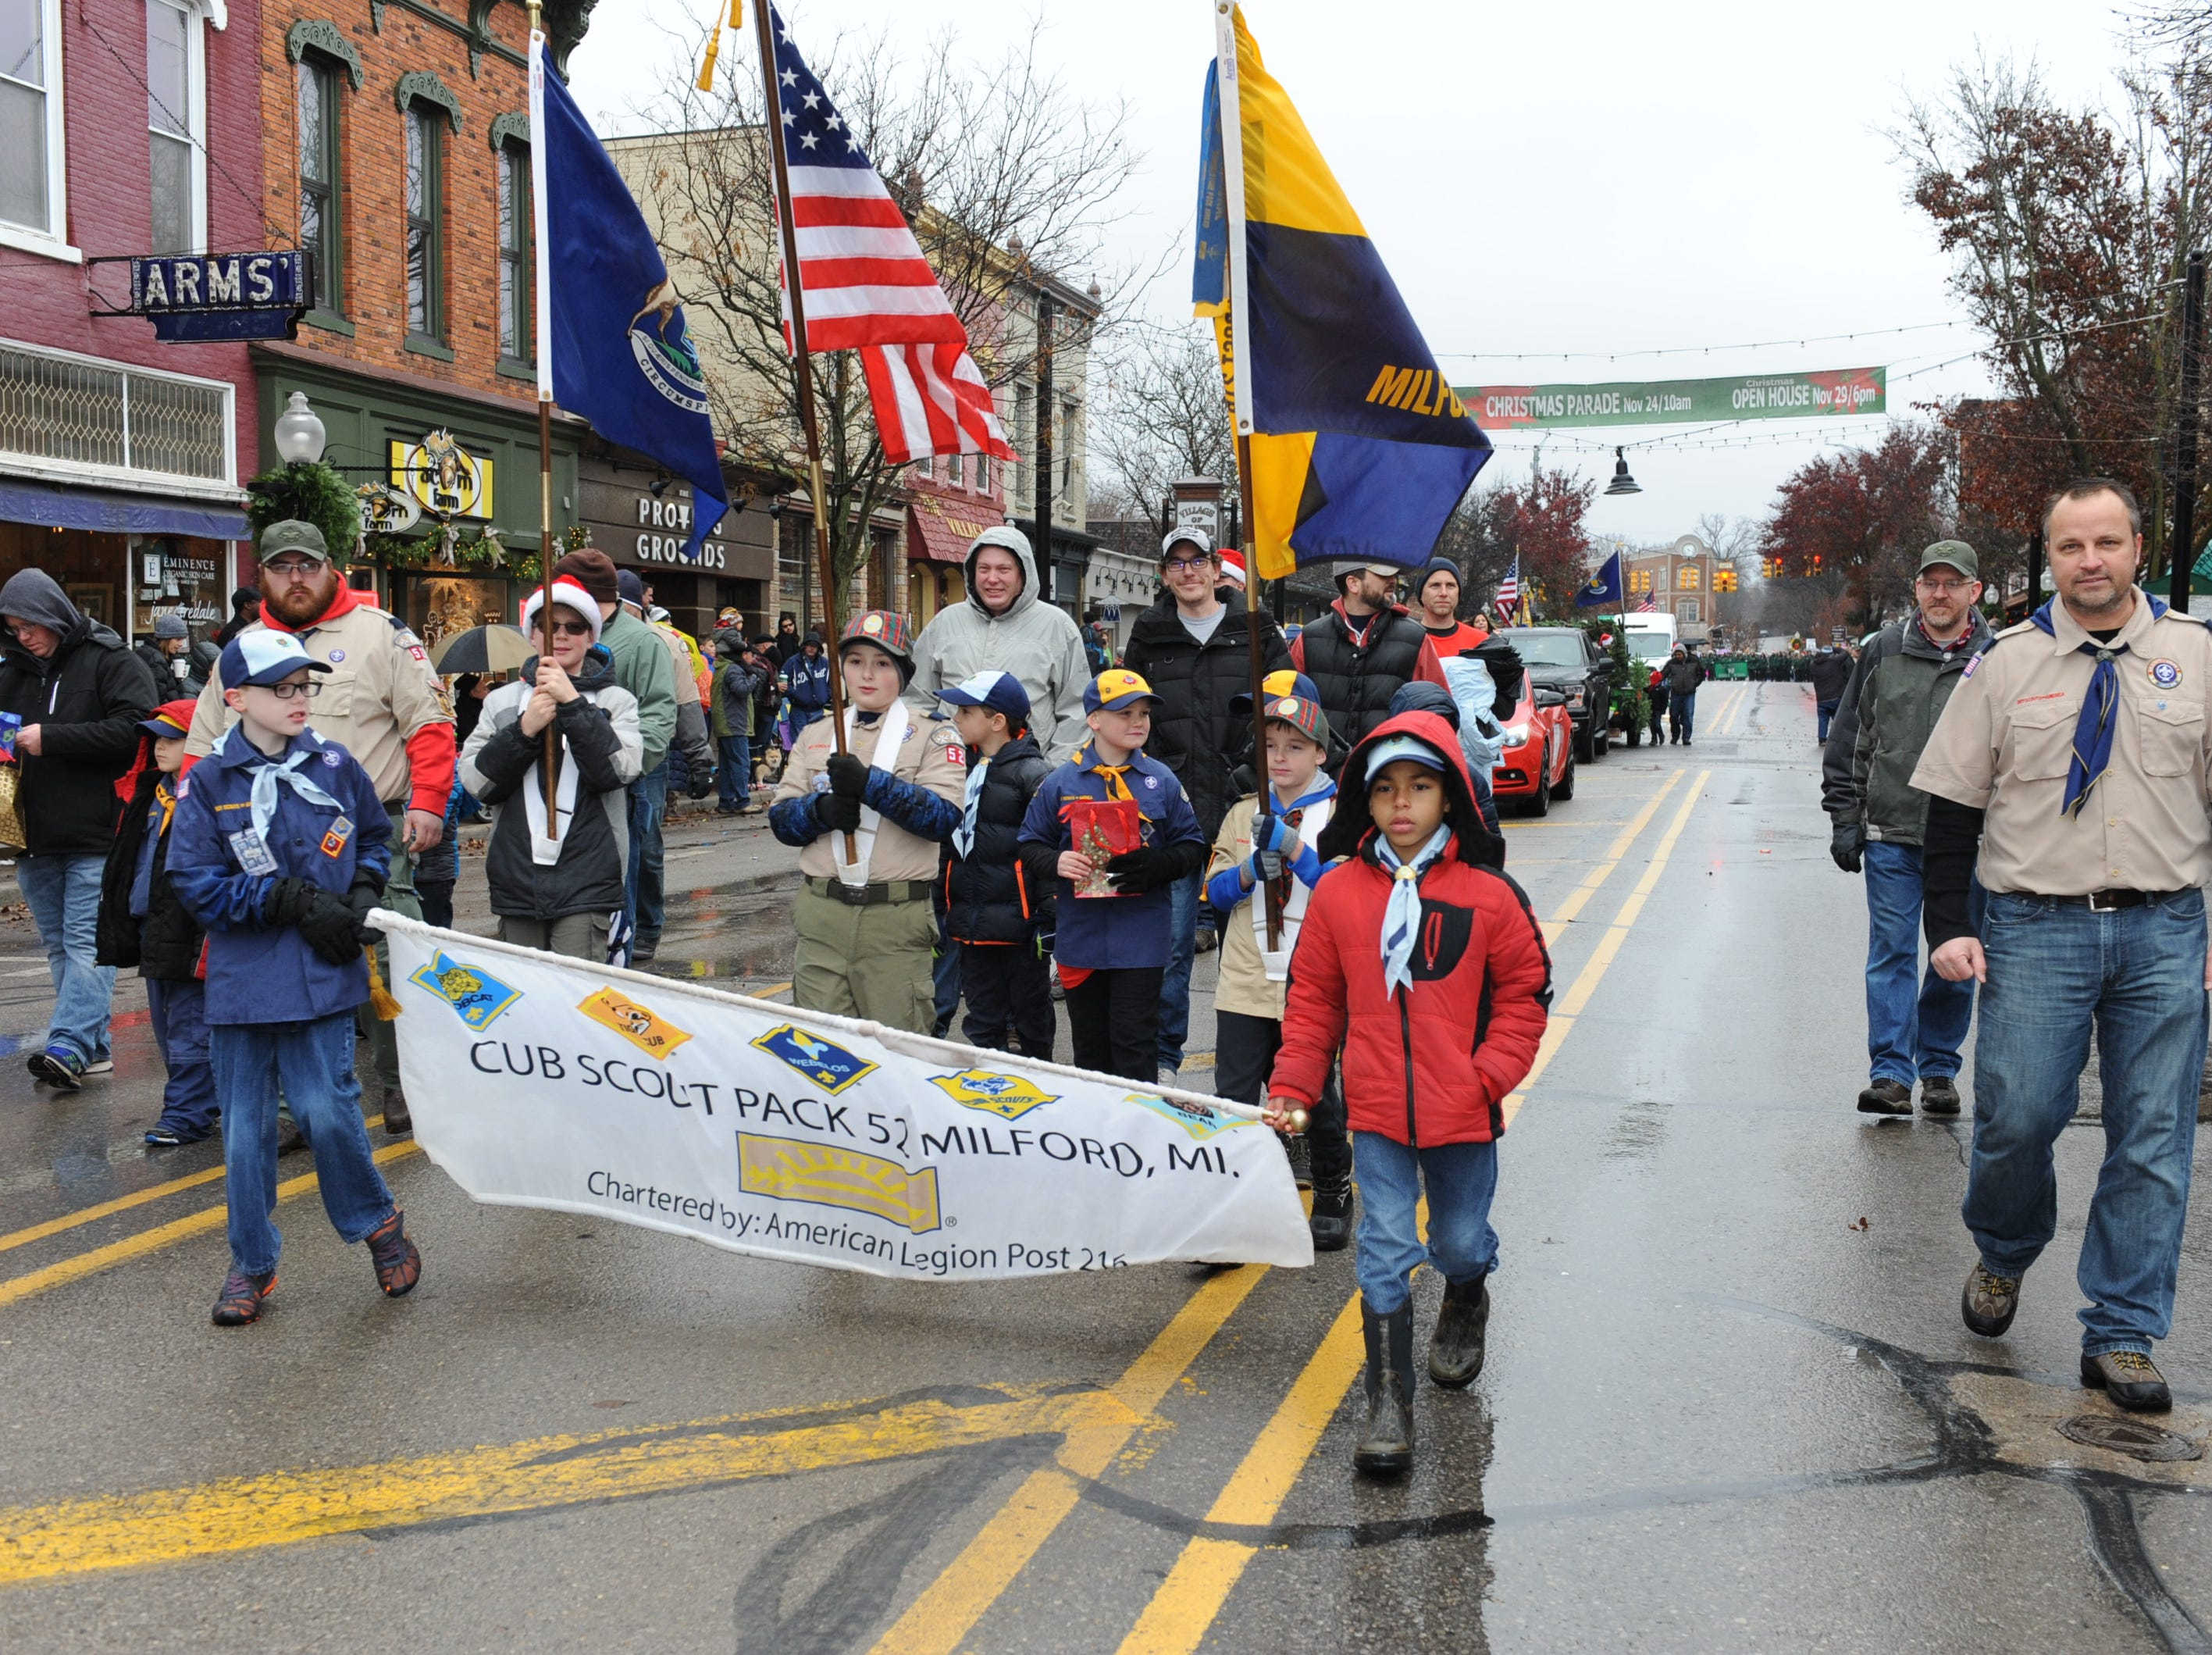 Milford Cub Scout Pack #52 marches in the annual parade in Milford.